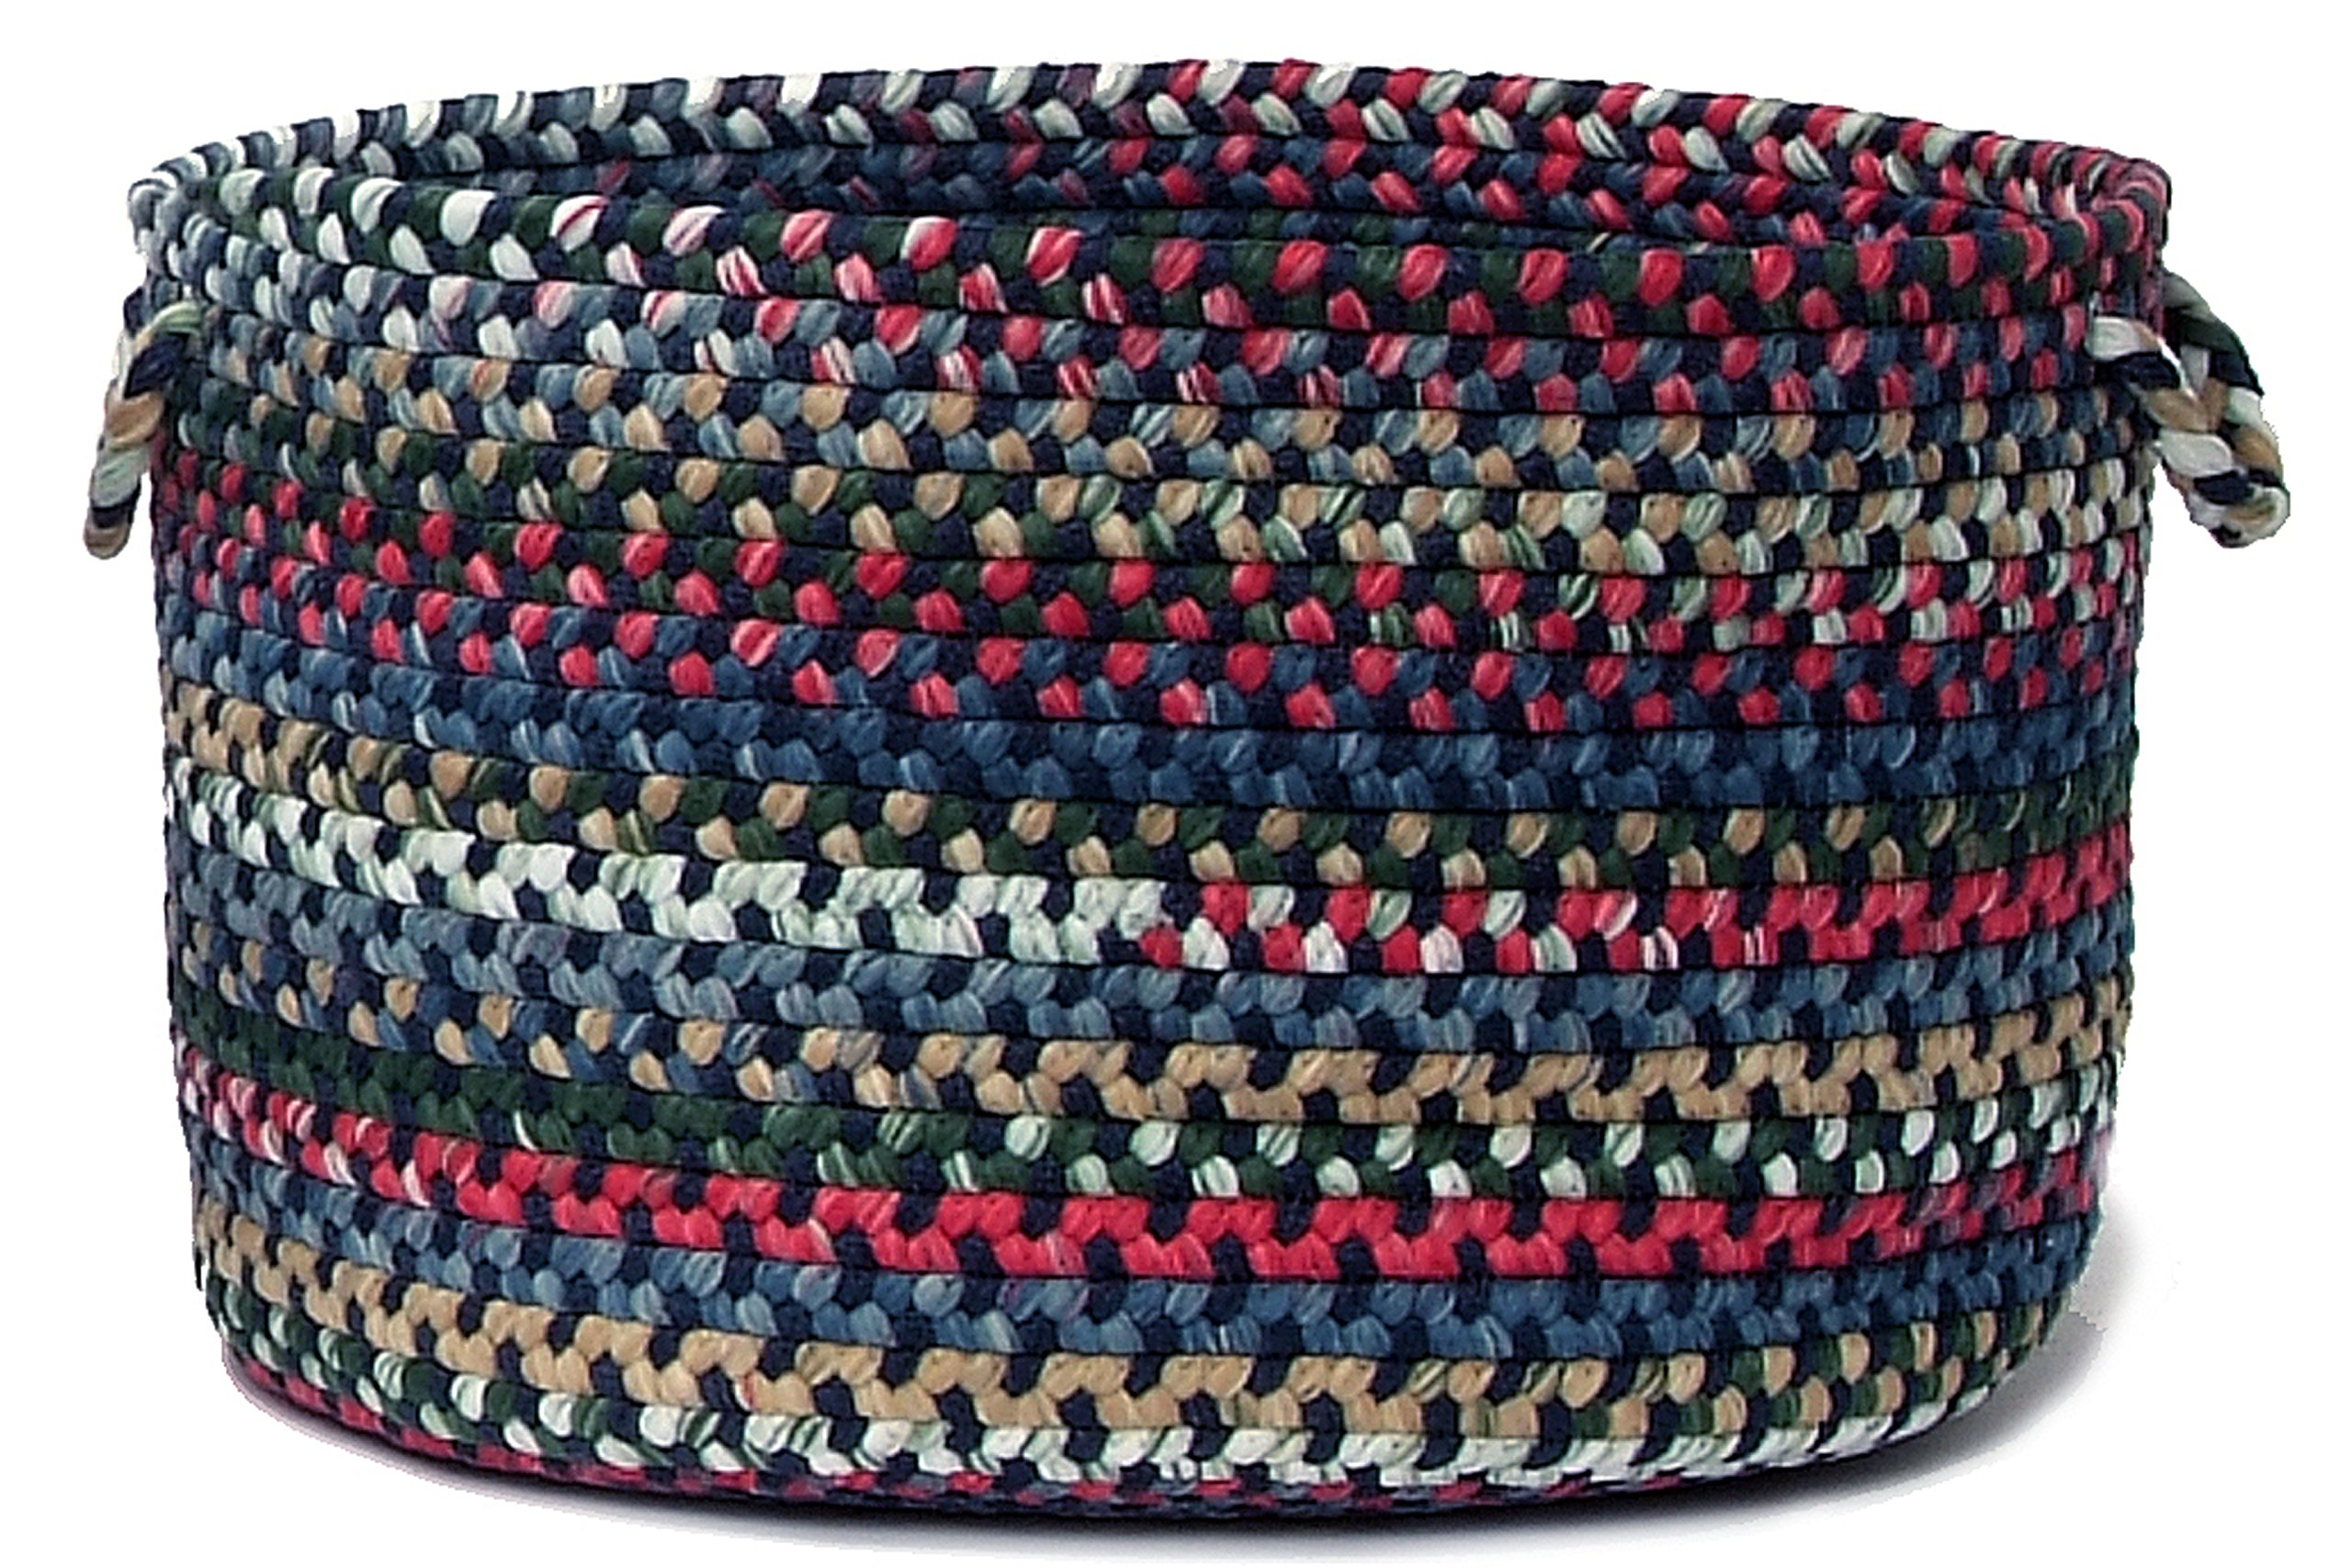 Colonial Mills Chestnut Knoll Utility Basket, 18 by 12-Inch, Baltic Blue